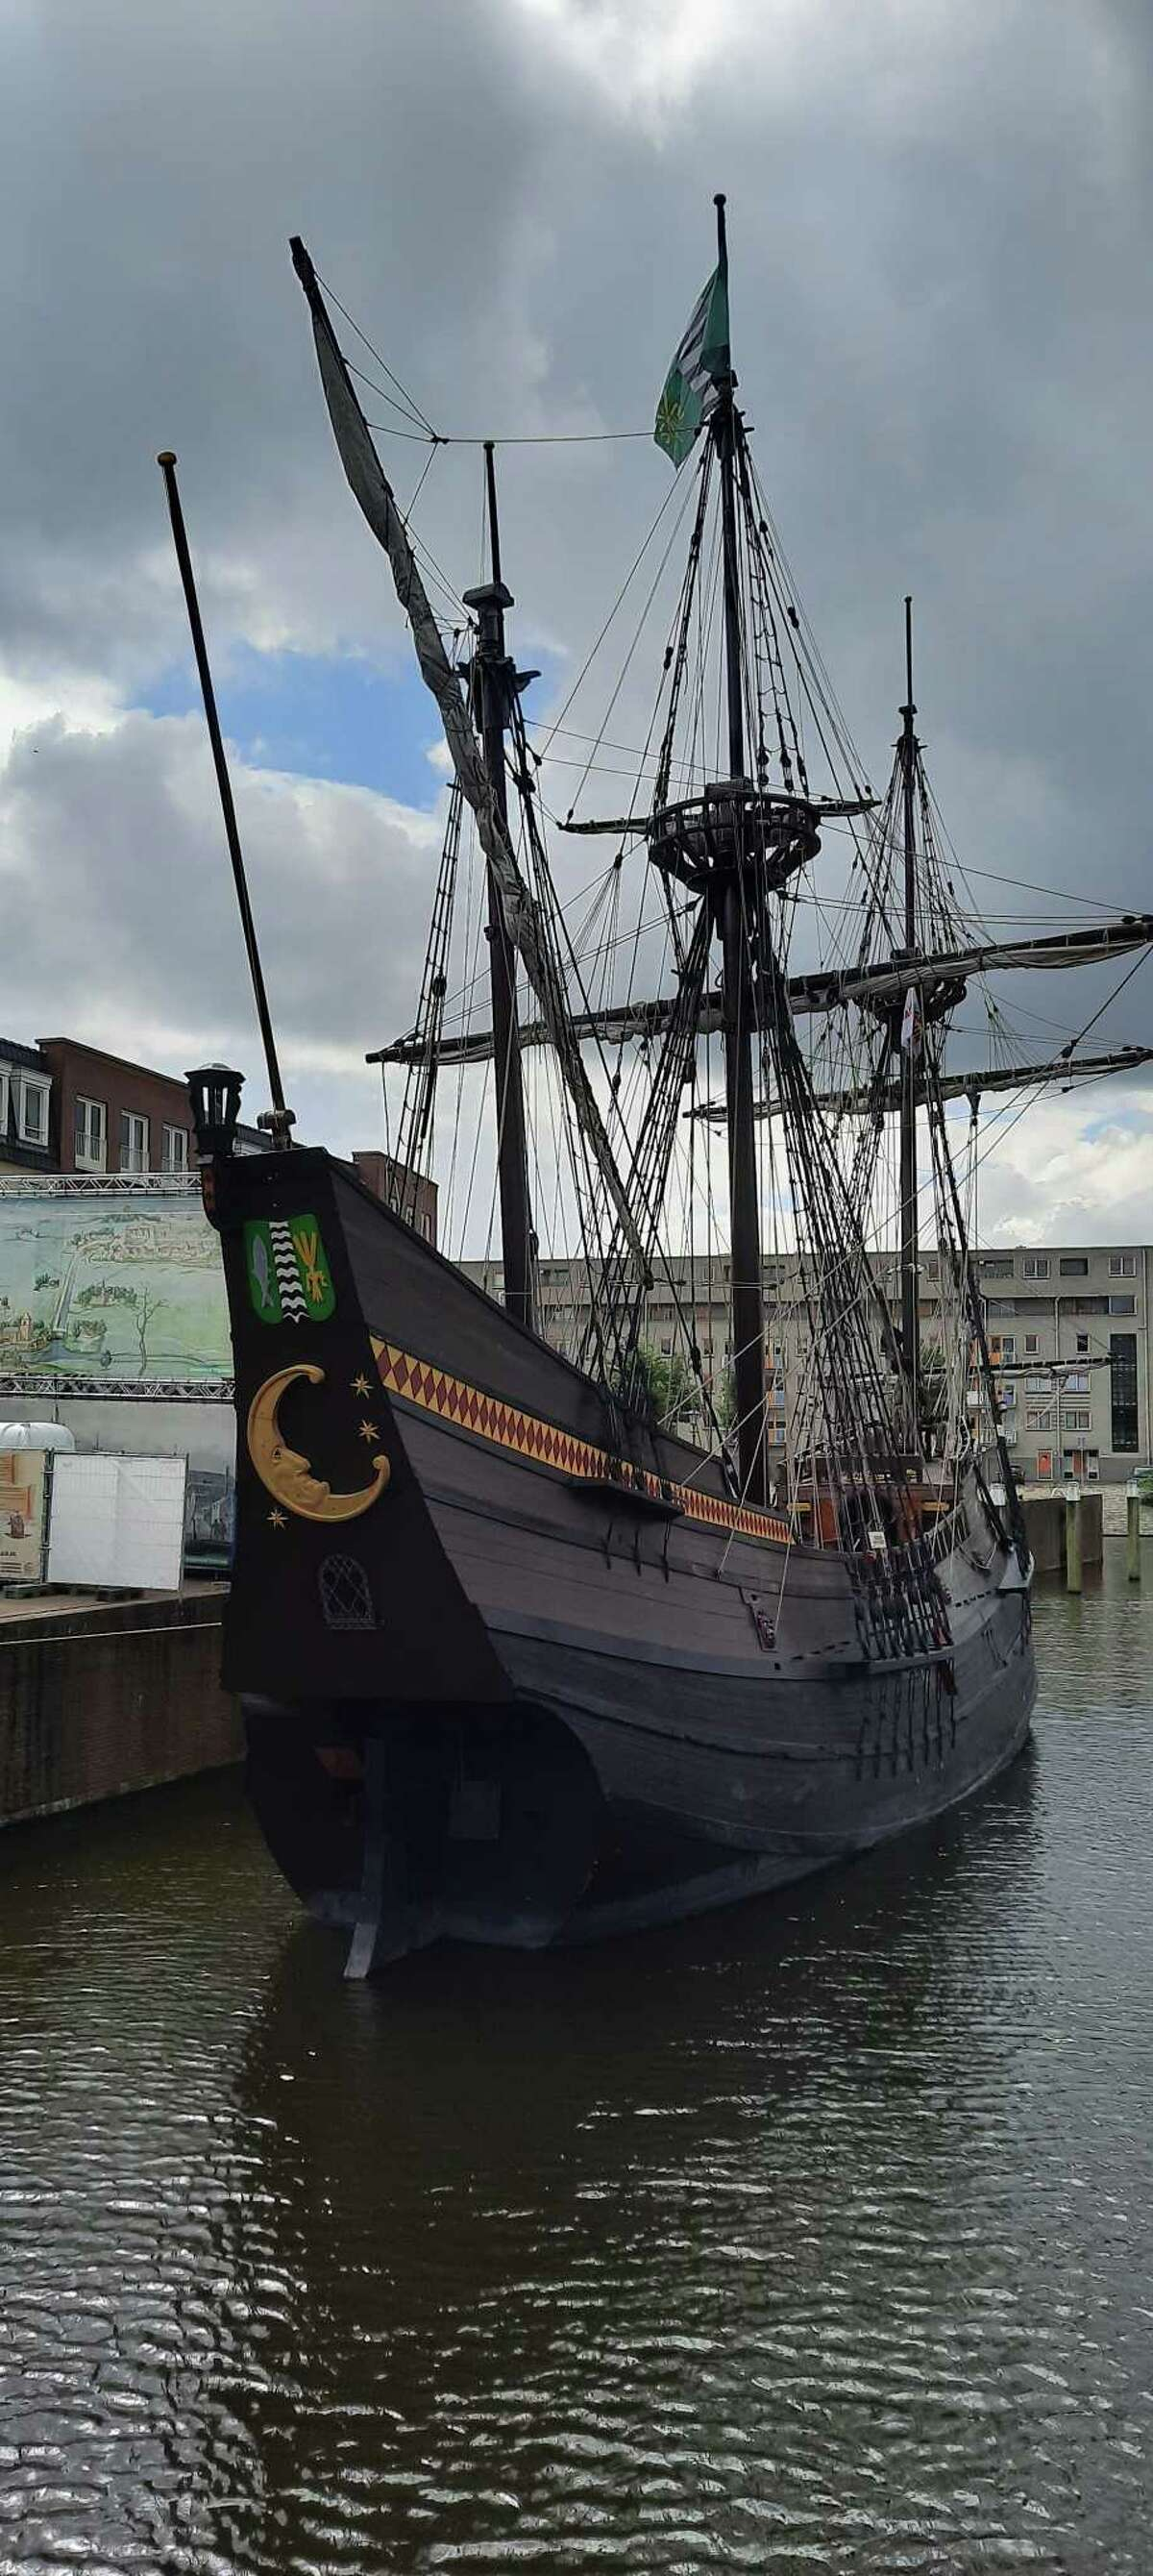 On a recent trip to Delfshaven (part of Rotterdam) the Netherlands, Marietta Velvis of Delmar was surprised to come upon a familiar site from the Hudson Valley: The Half Moon, or Halve Maan, in Dutch. She said the replica of Henry Hudson's ship was sold to the Westfries Museum in the Dutch city of Hoorn about five years ago